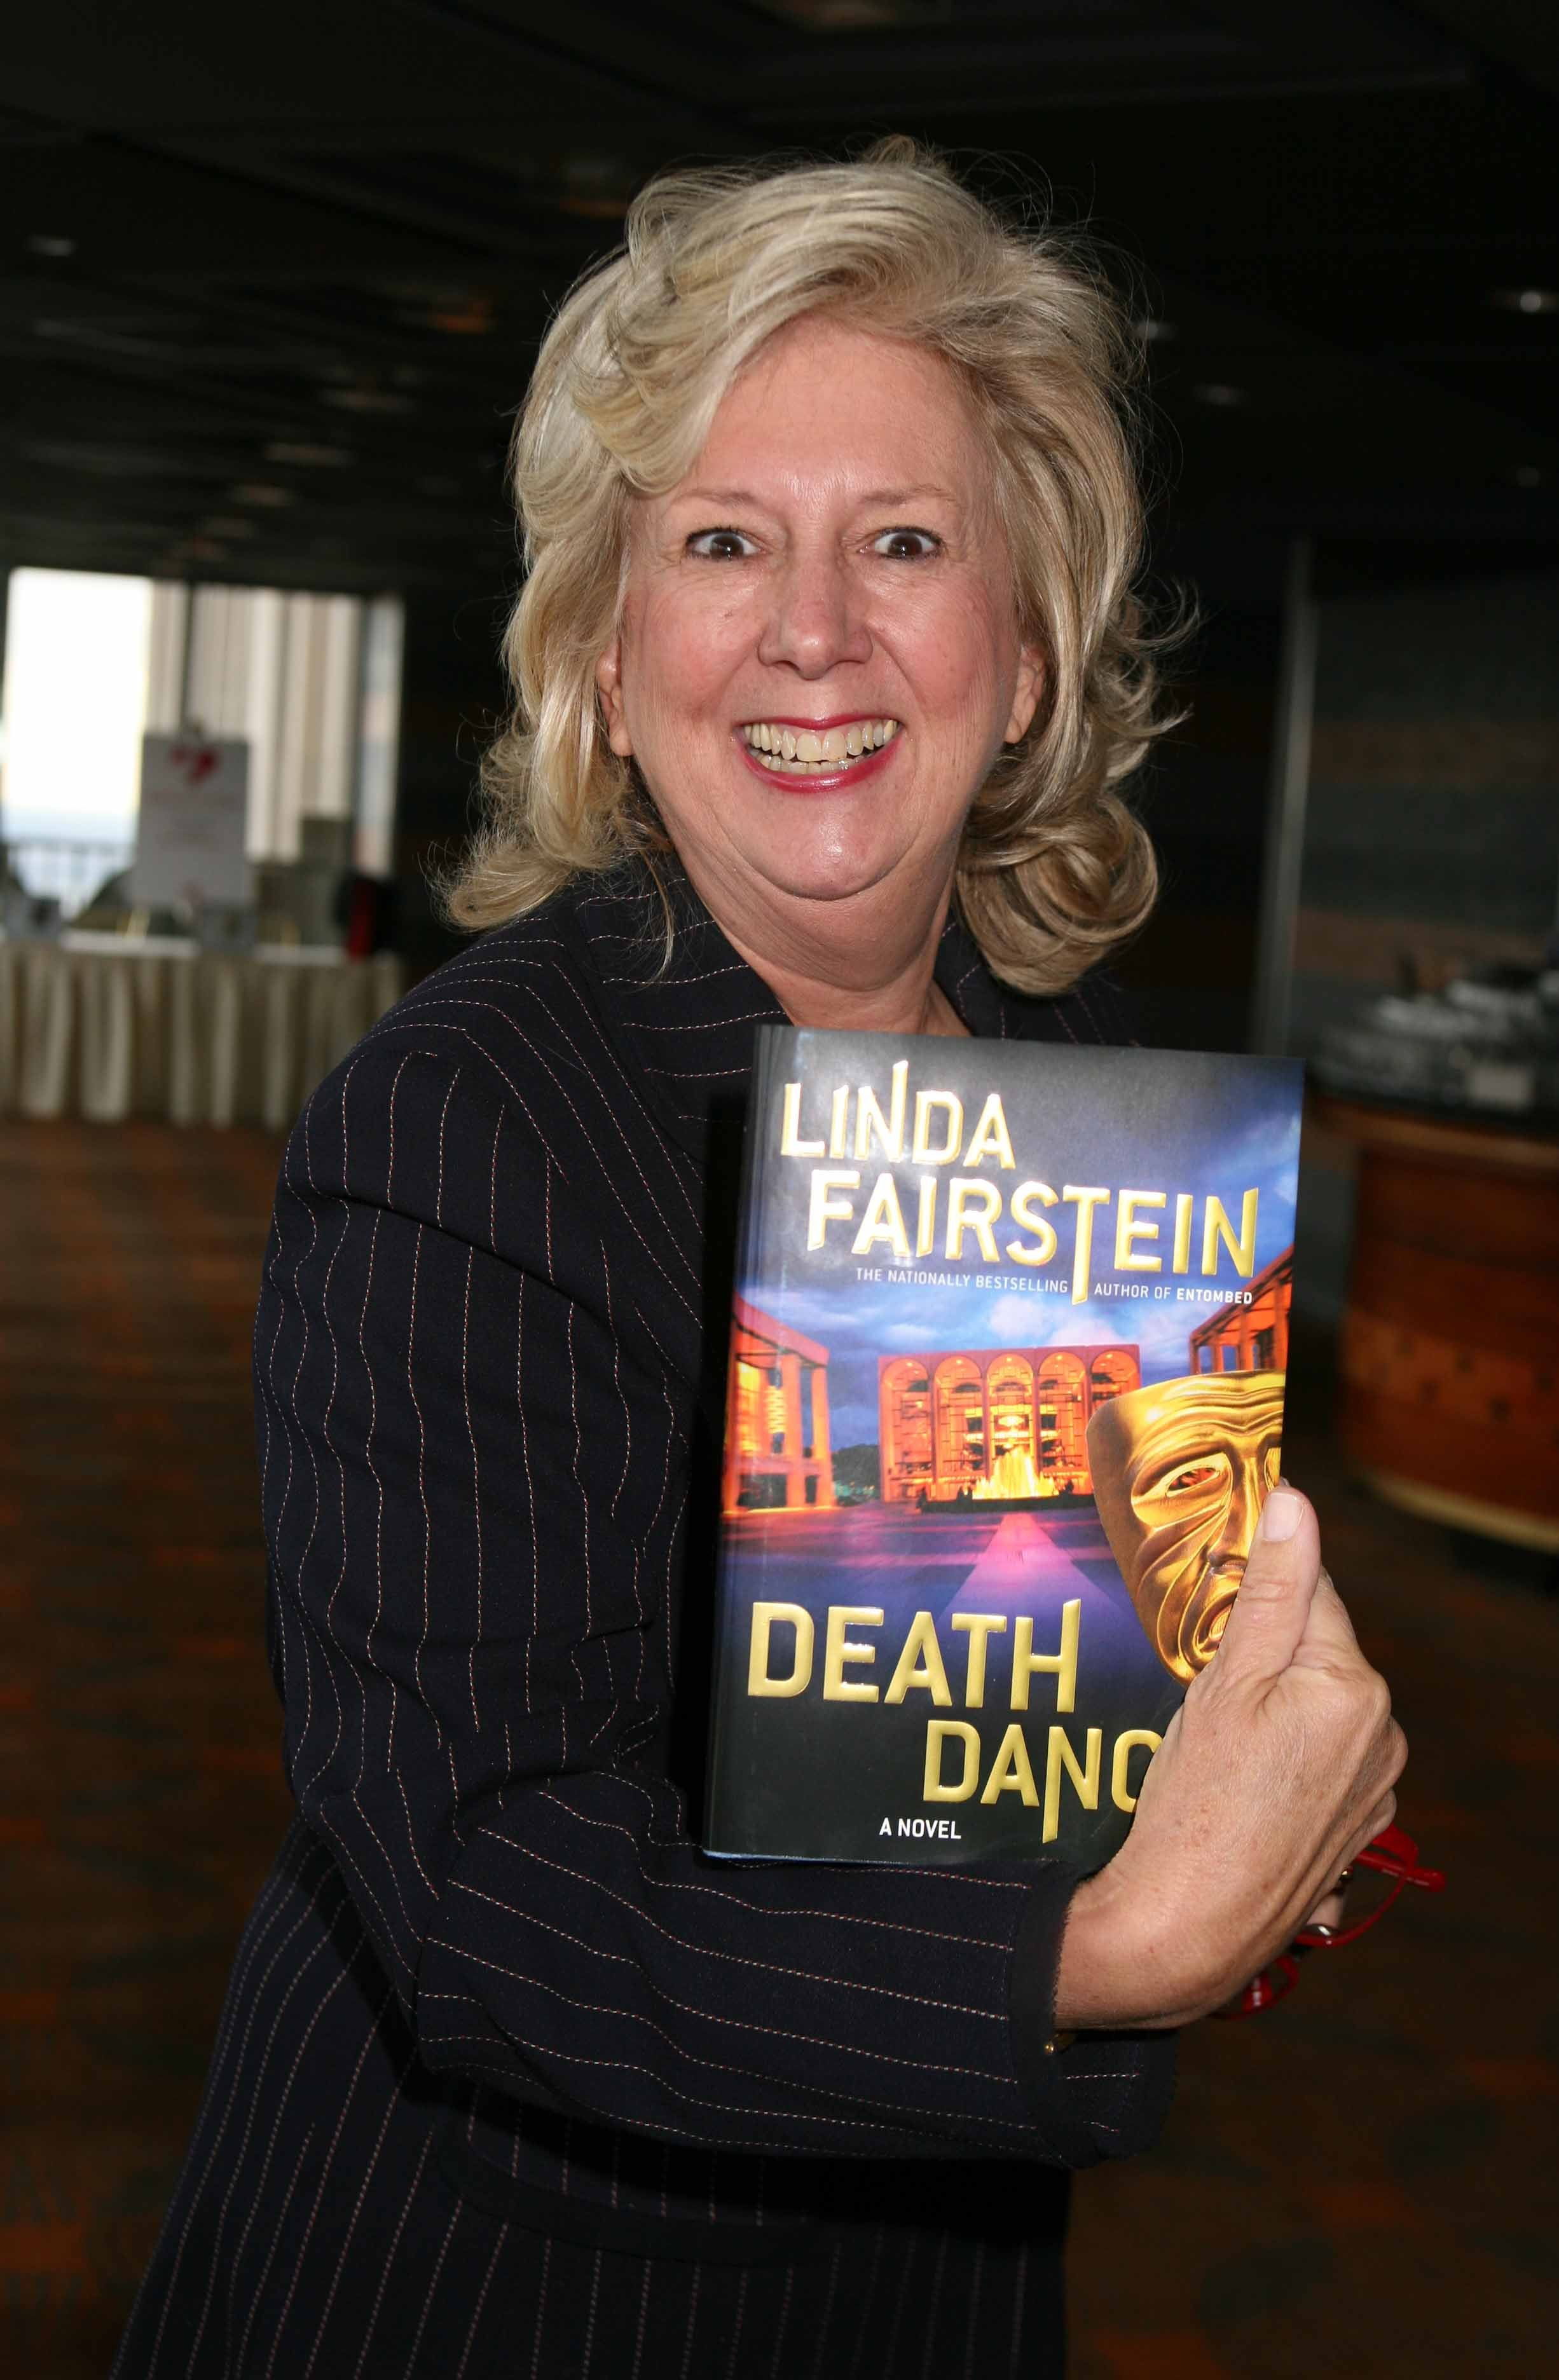 'Central Park 5' Prosecutor Linda Fairstein Has Been Dropped By Longtime Book Publisher